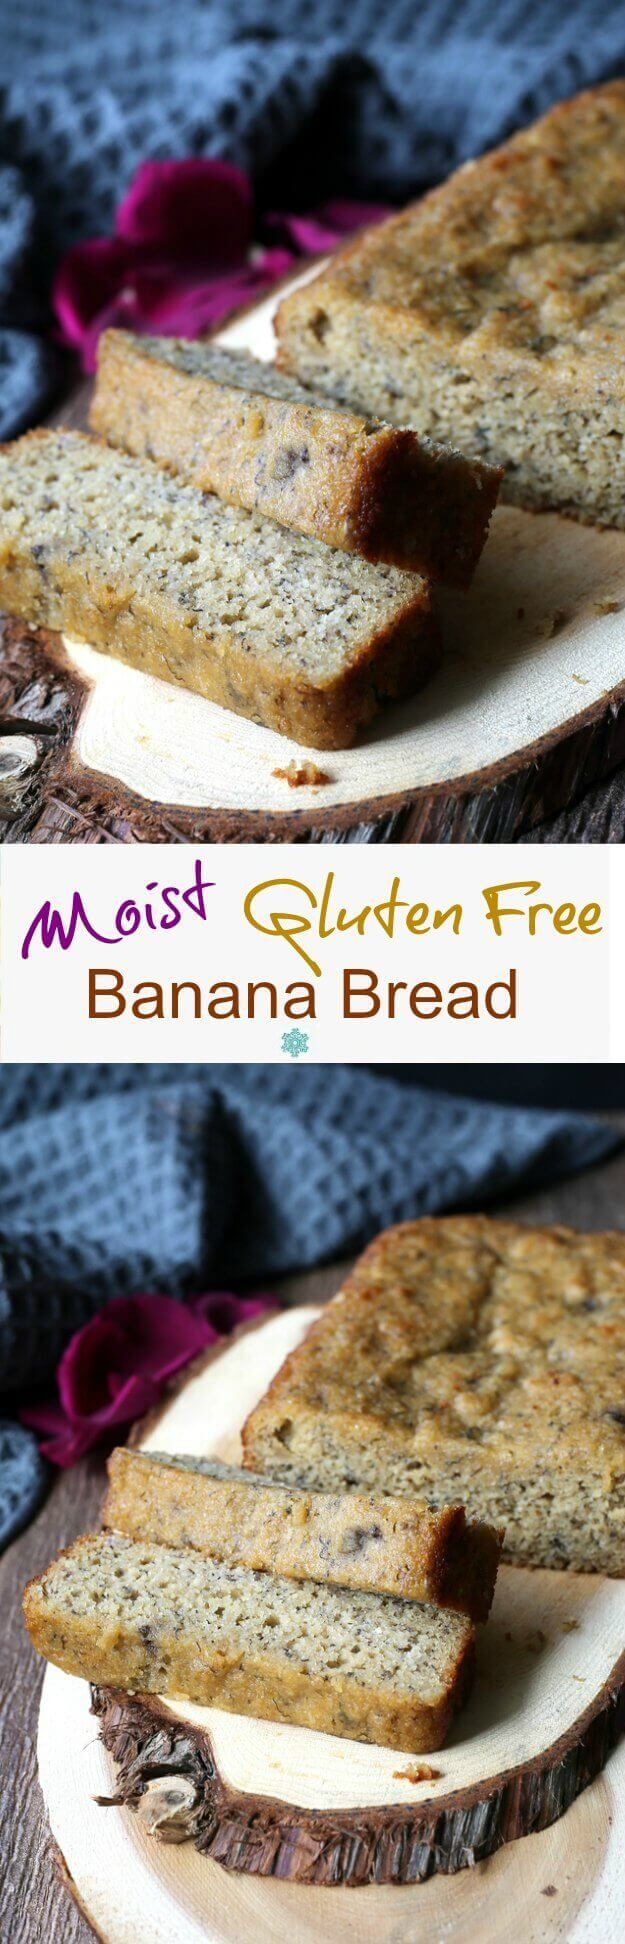 Moist Gluten-Free Banana Bread is something that can be enjoyed by Everyone. Almond flour and maple syrup help make this quick bread perfection.